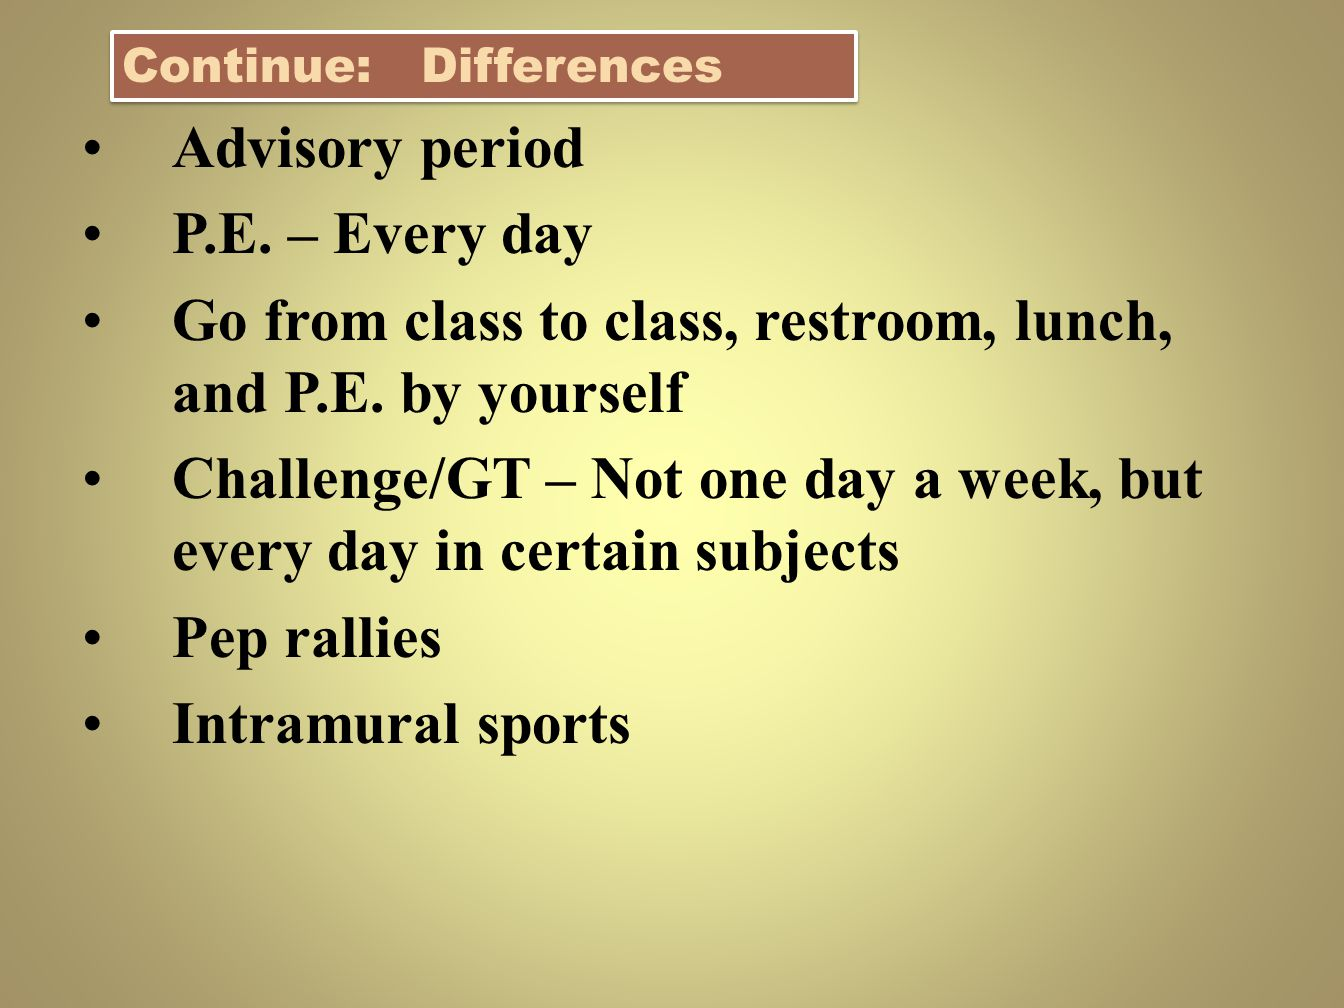 Advisory period P.E. – Every day Go from class to class, restroom, lunch, and P.E. by yourself Challenge/GT – Not one day a week, but every day in cer